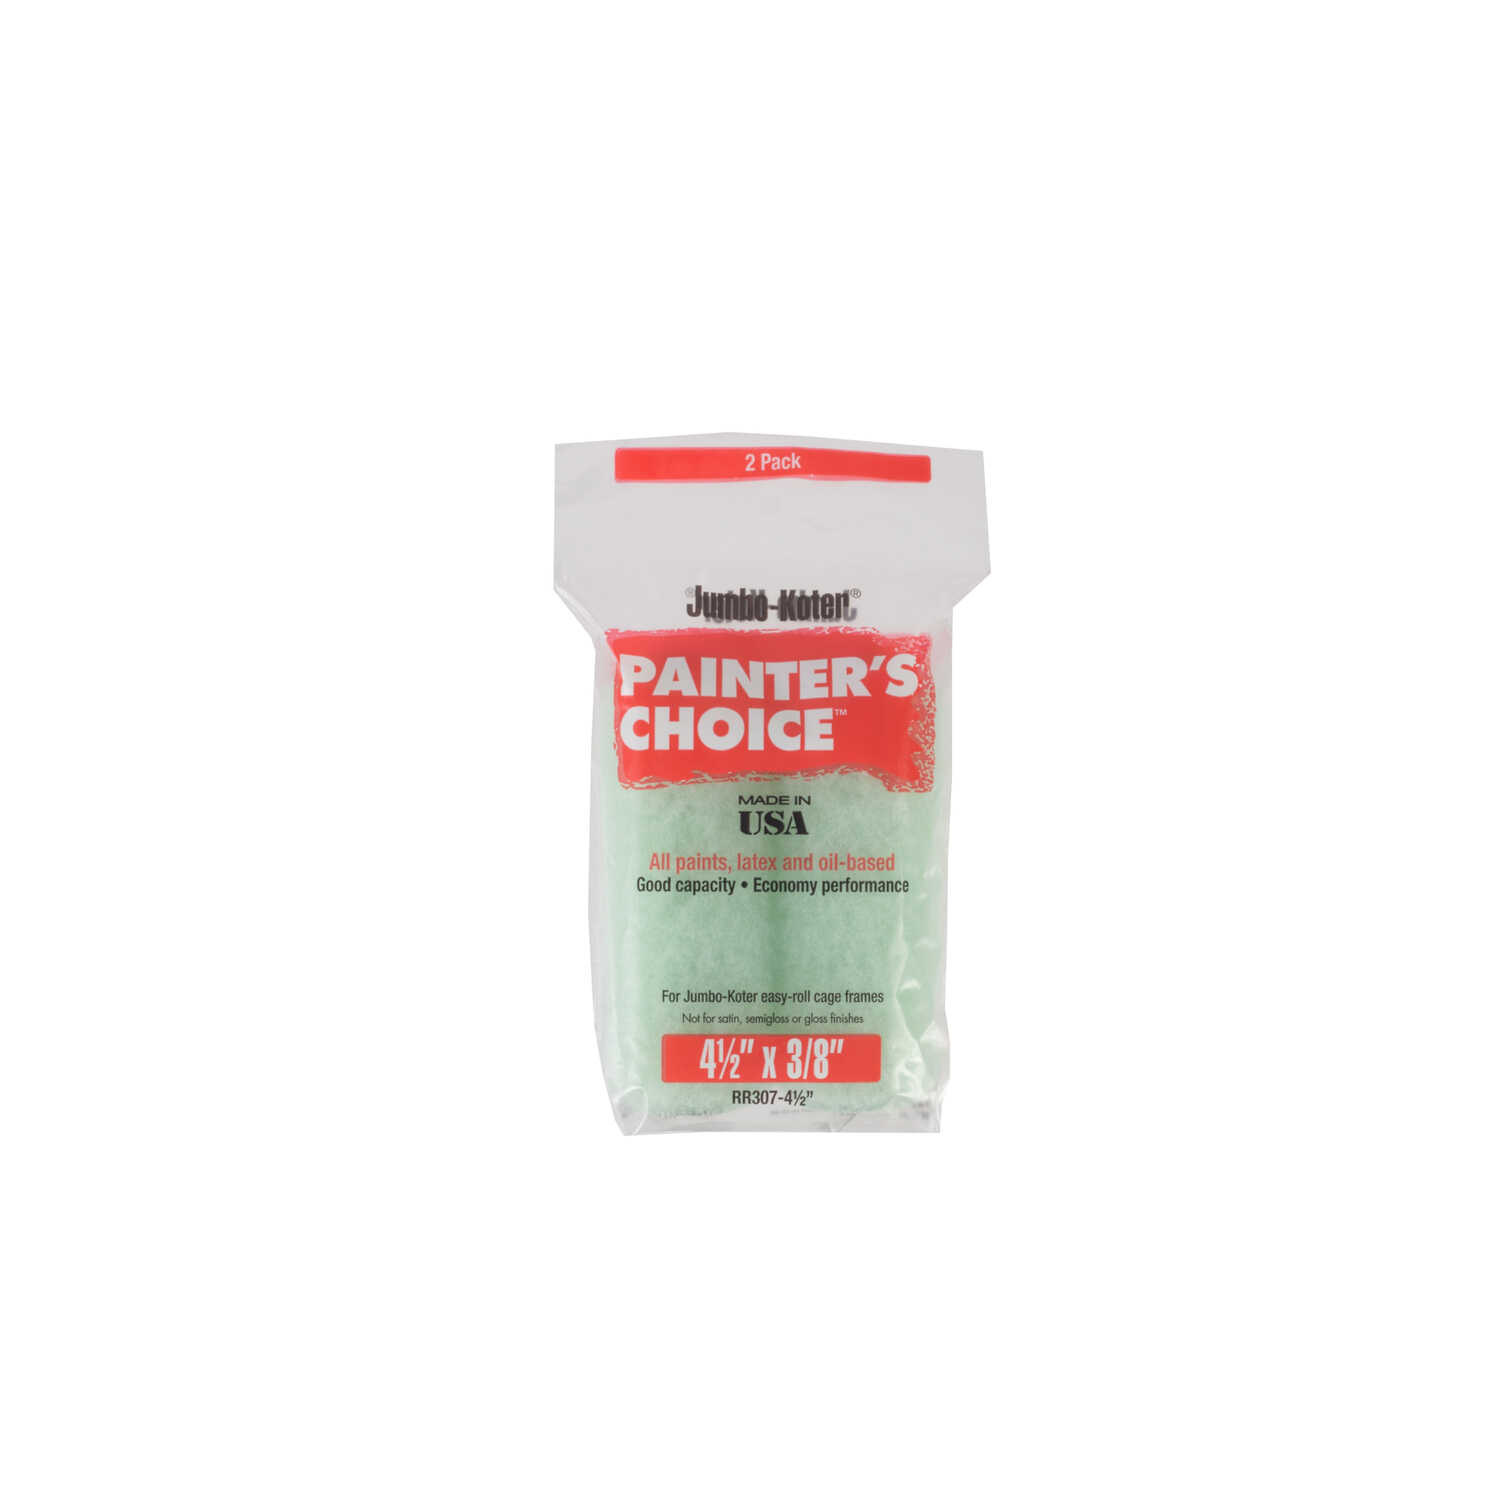 Wooster  Painter's Choice  Knit  3/8 in.  x 4-1/2 in. W Paint Roller Cover  For Medium Surfaces 2 pk